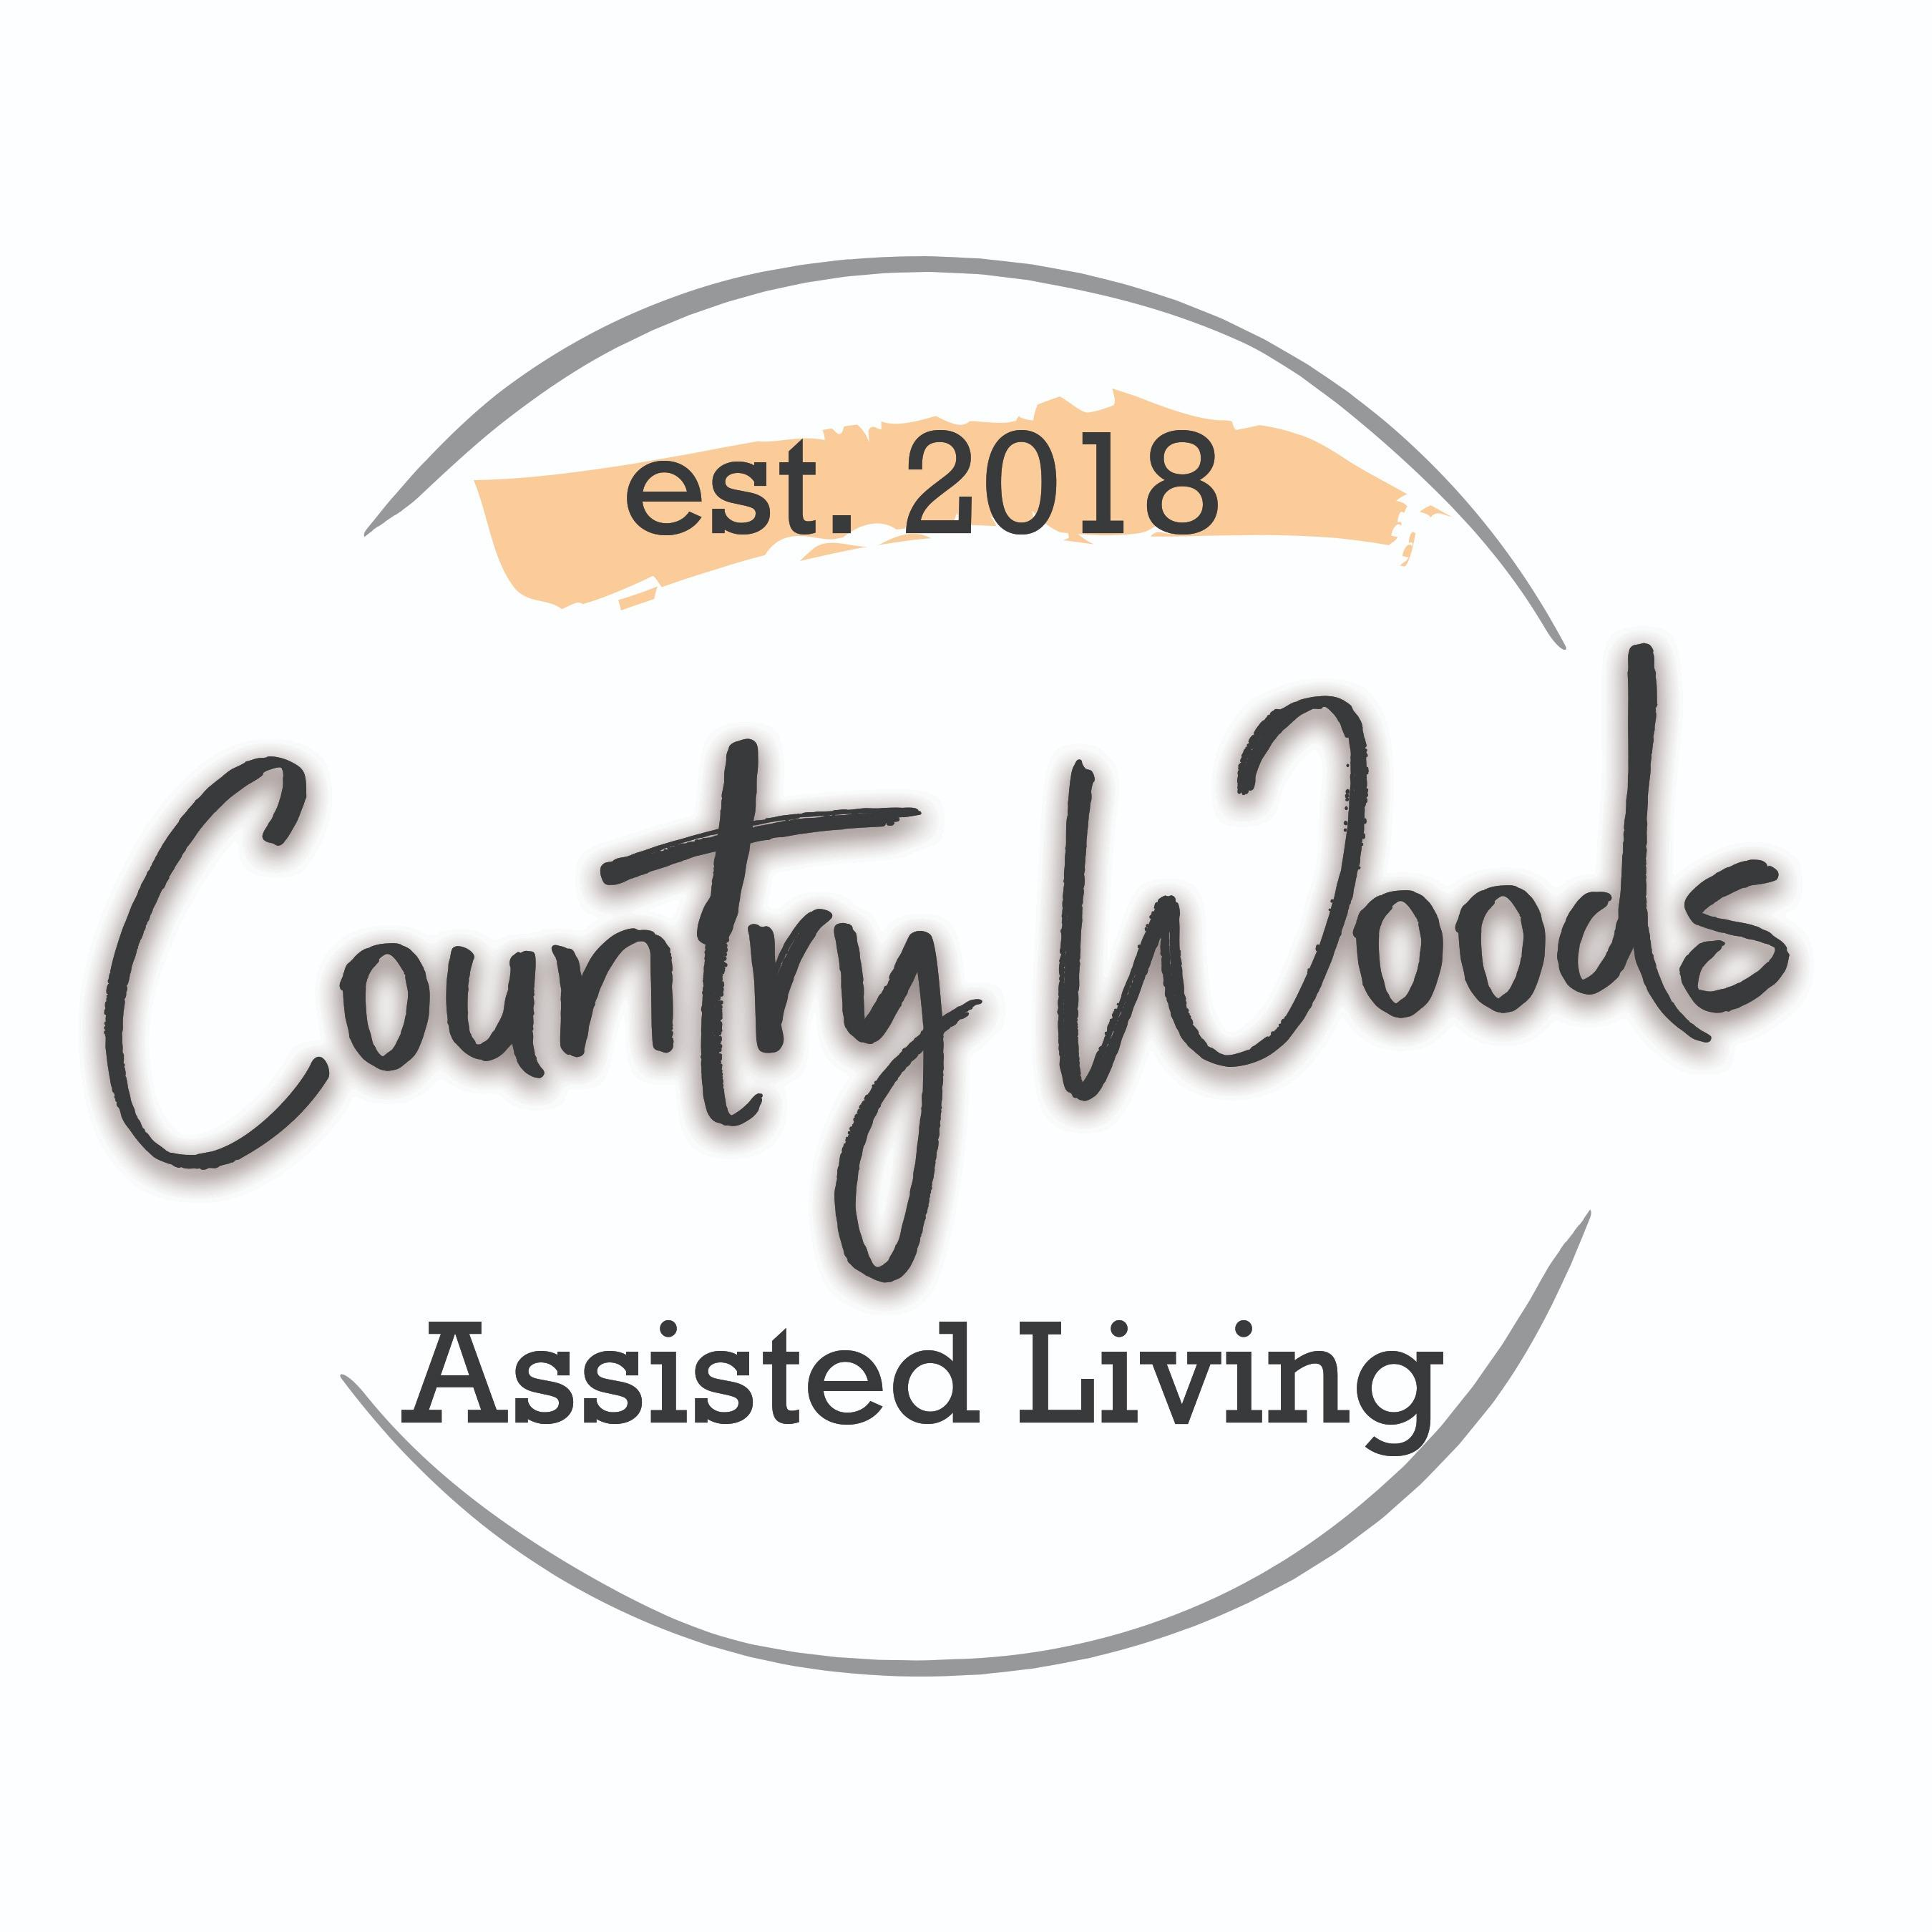 Country Woods Assisted Living